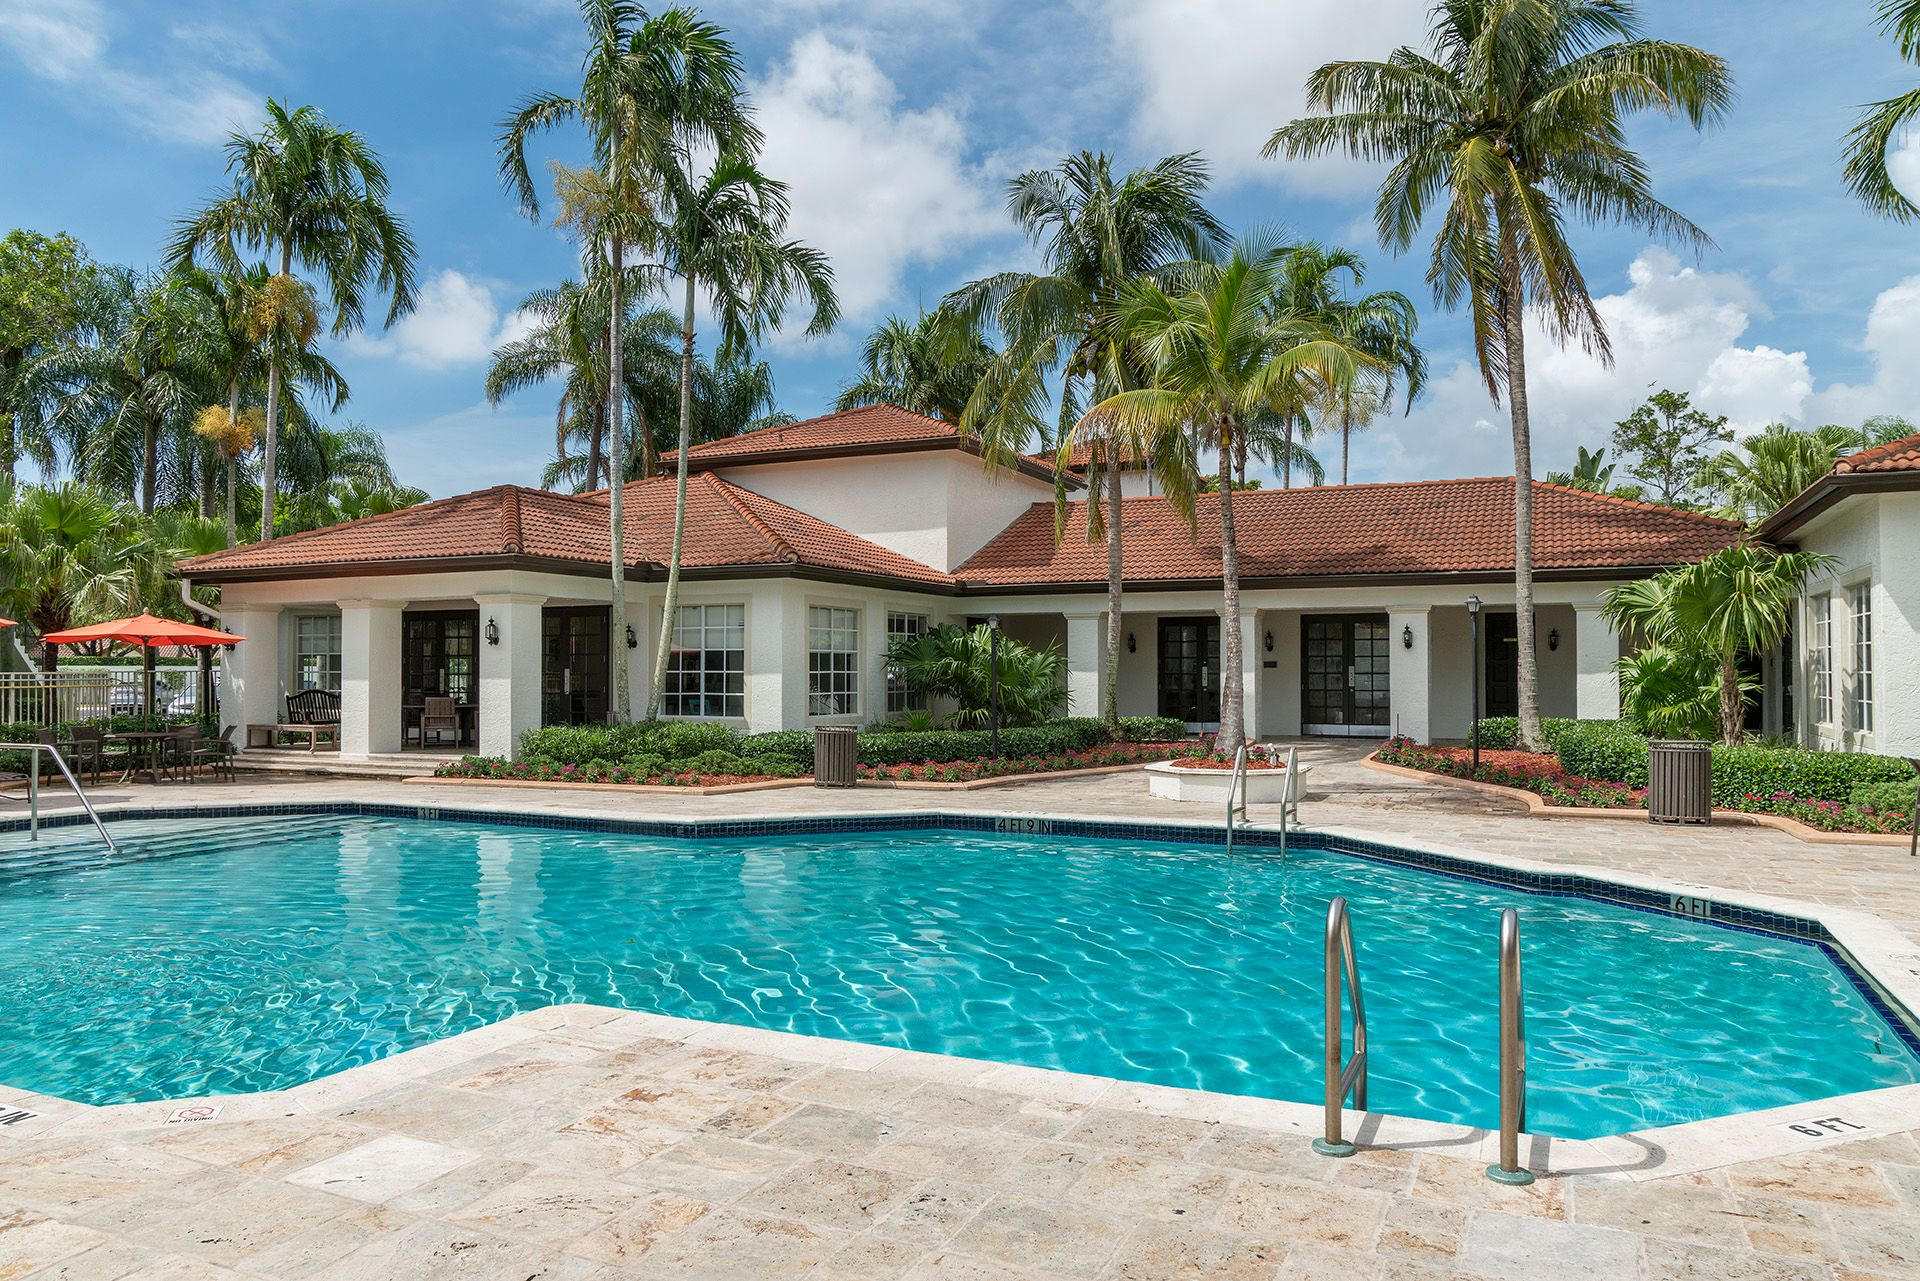 Pool and clubhouse with palm trees